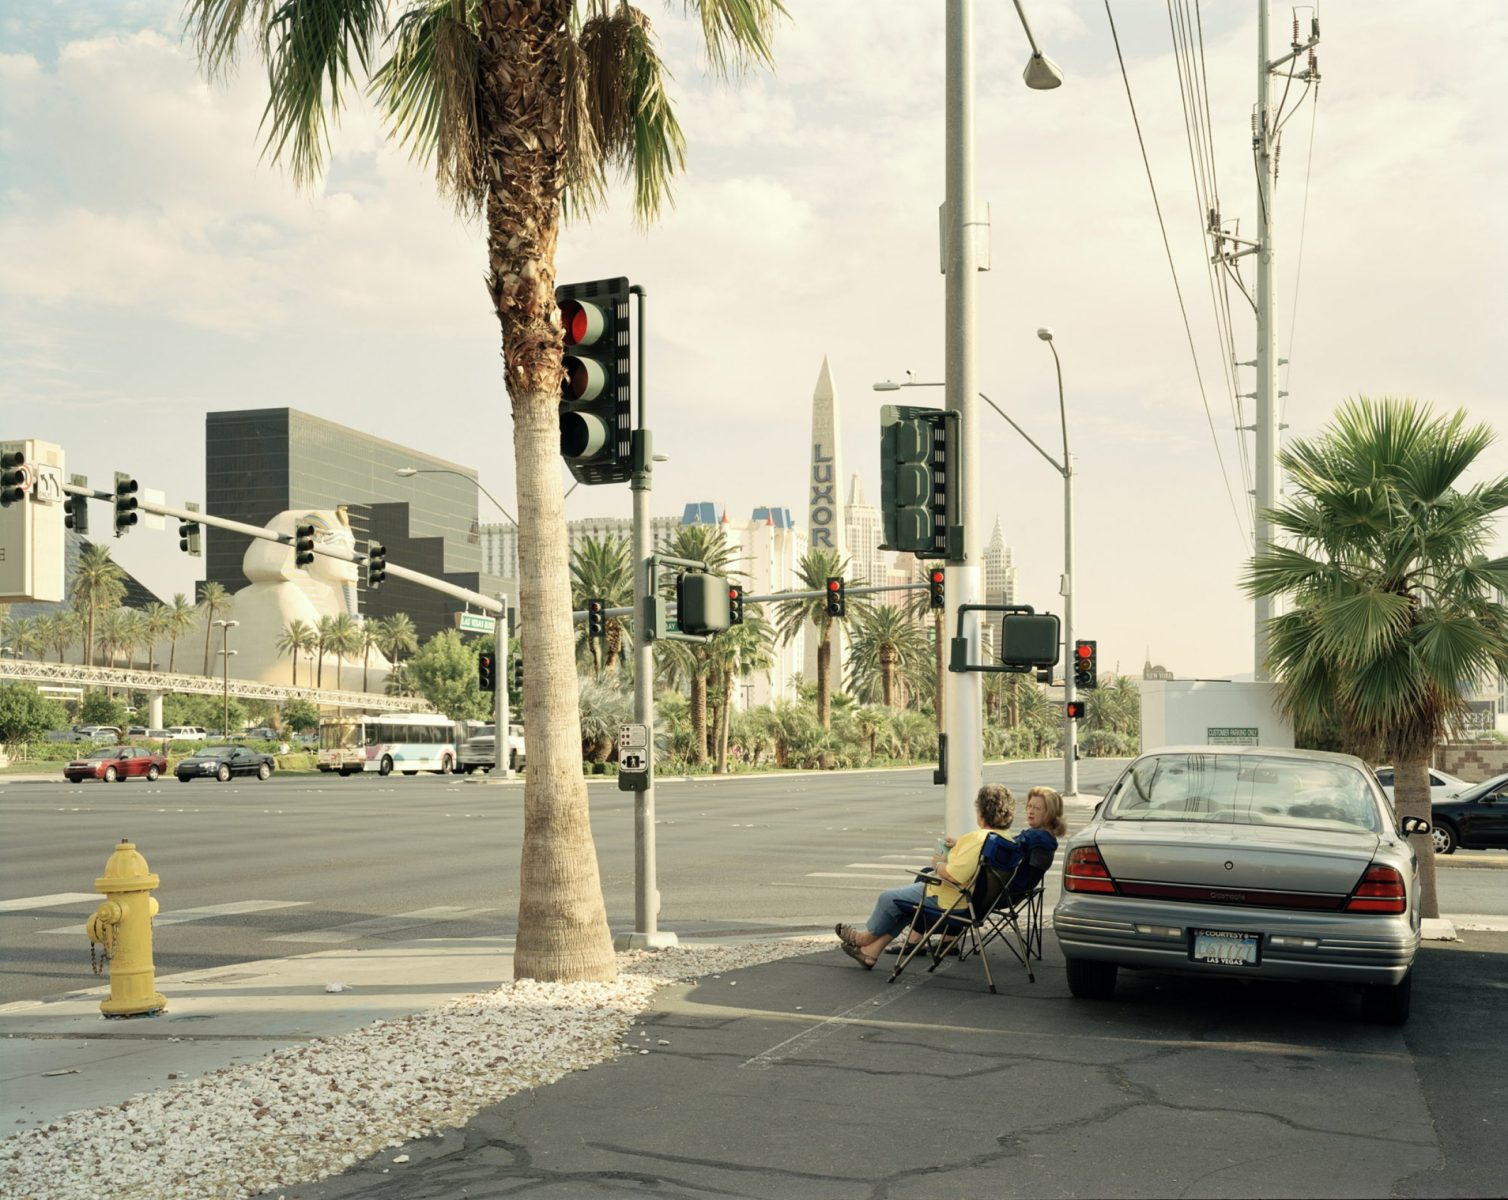 Roadside Picnic, Las Vegas, USA, 2005 photograph by Nadav Kander